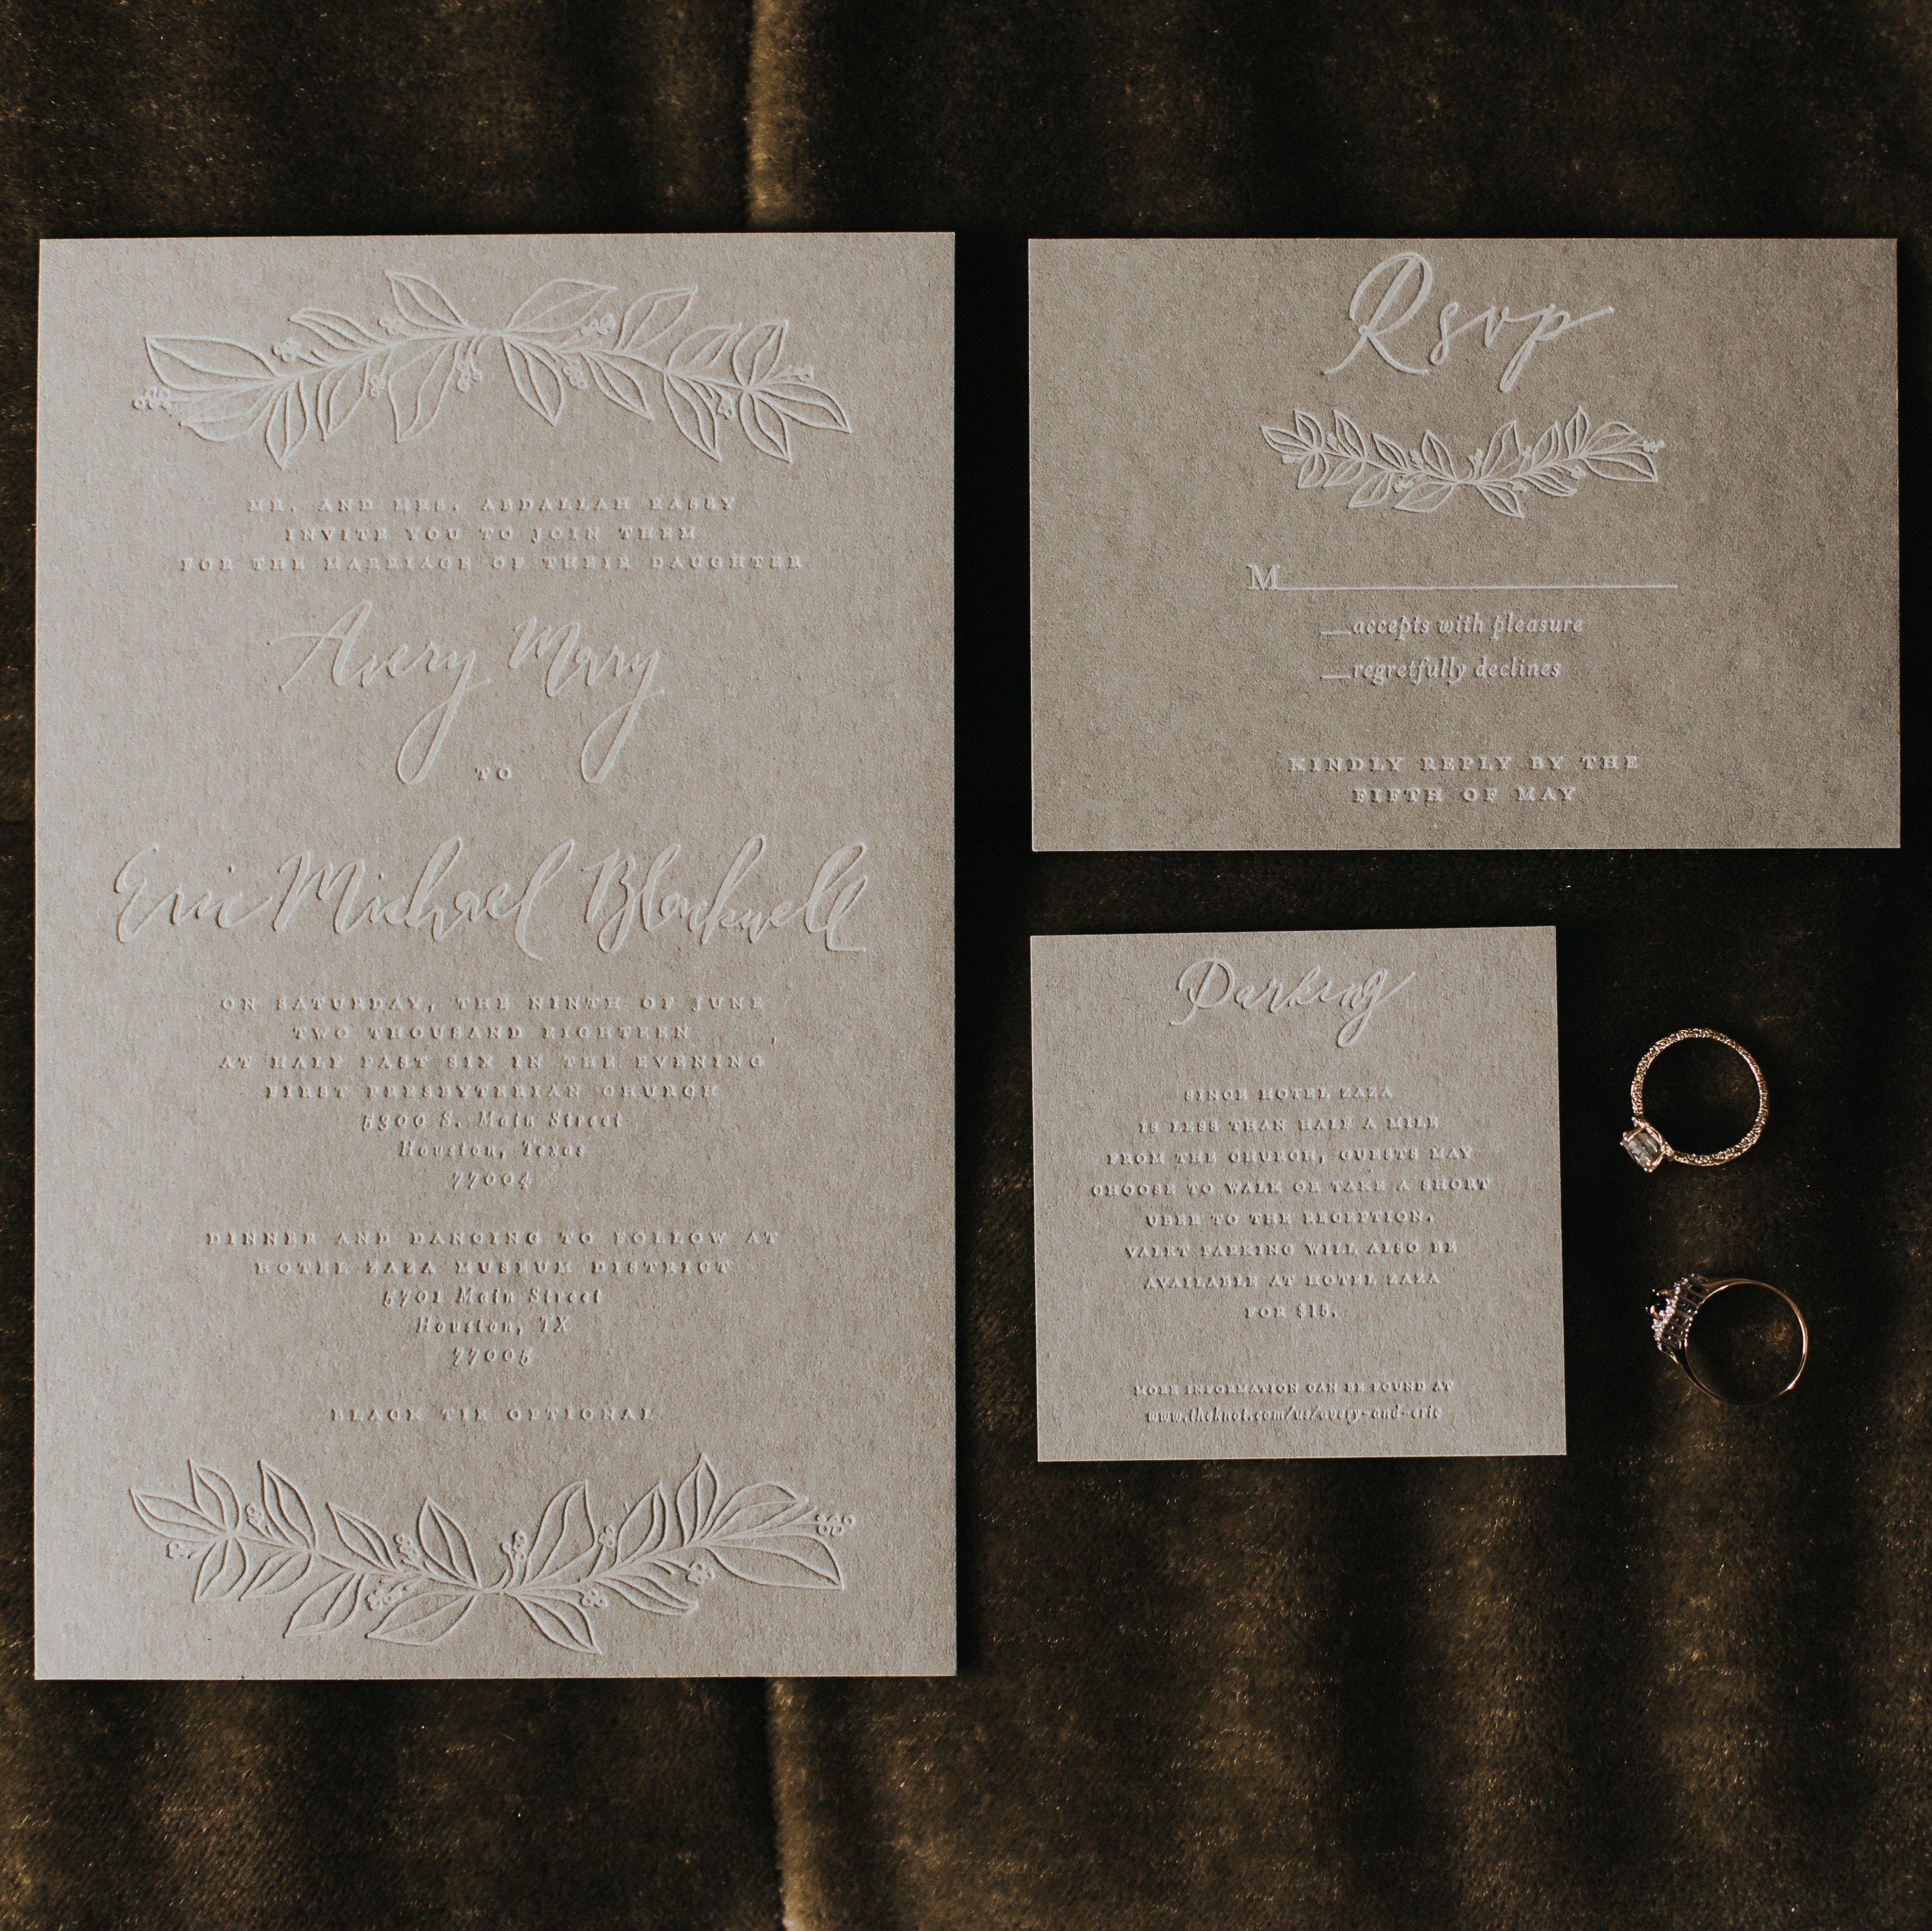 The wedding invitation suite.